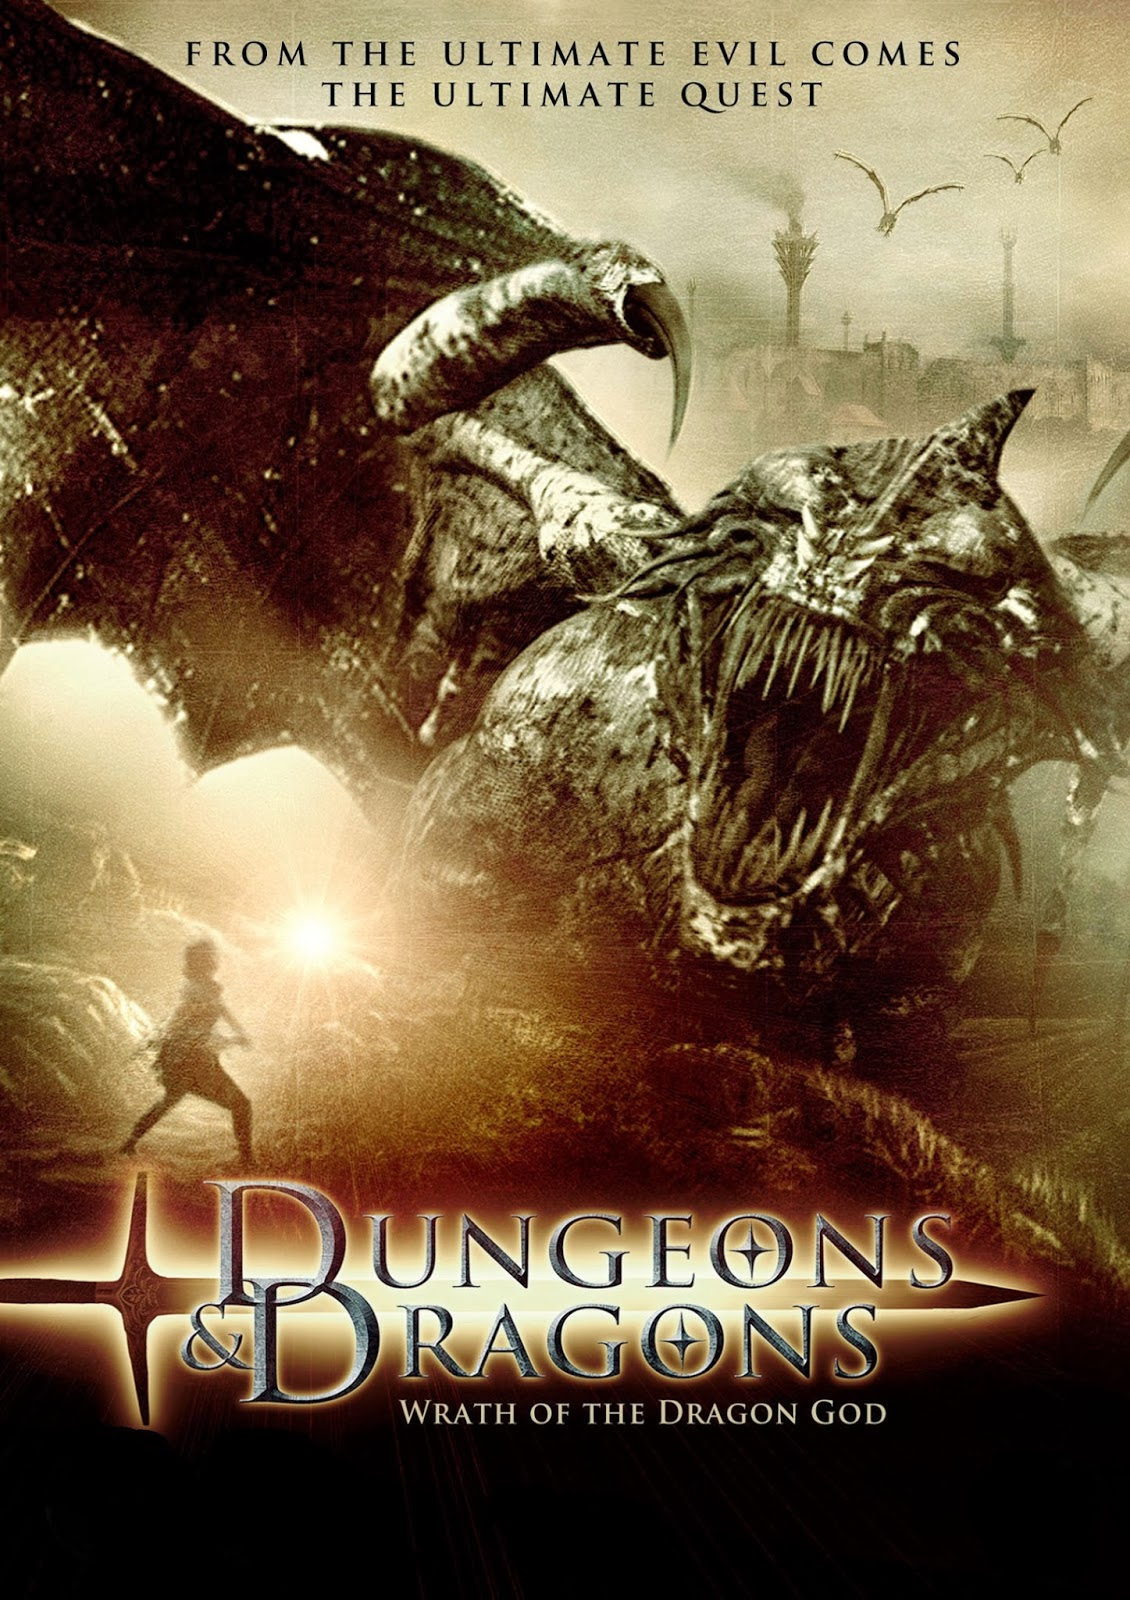 Dungeons & Dragons Wrath of the Dragon God (2005)